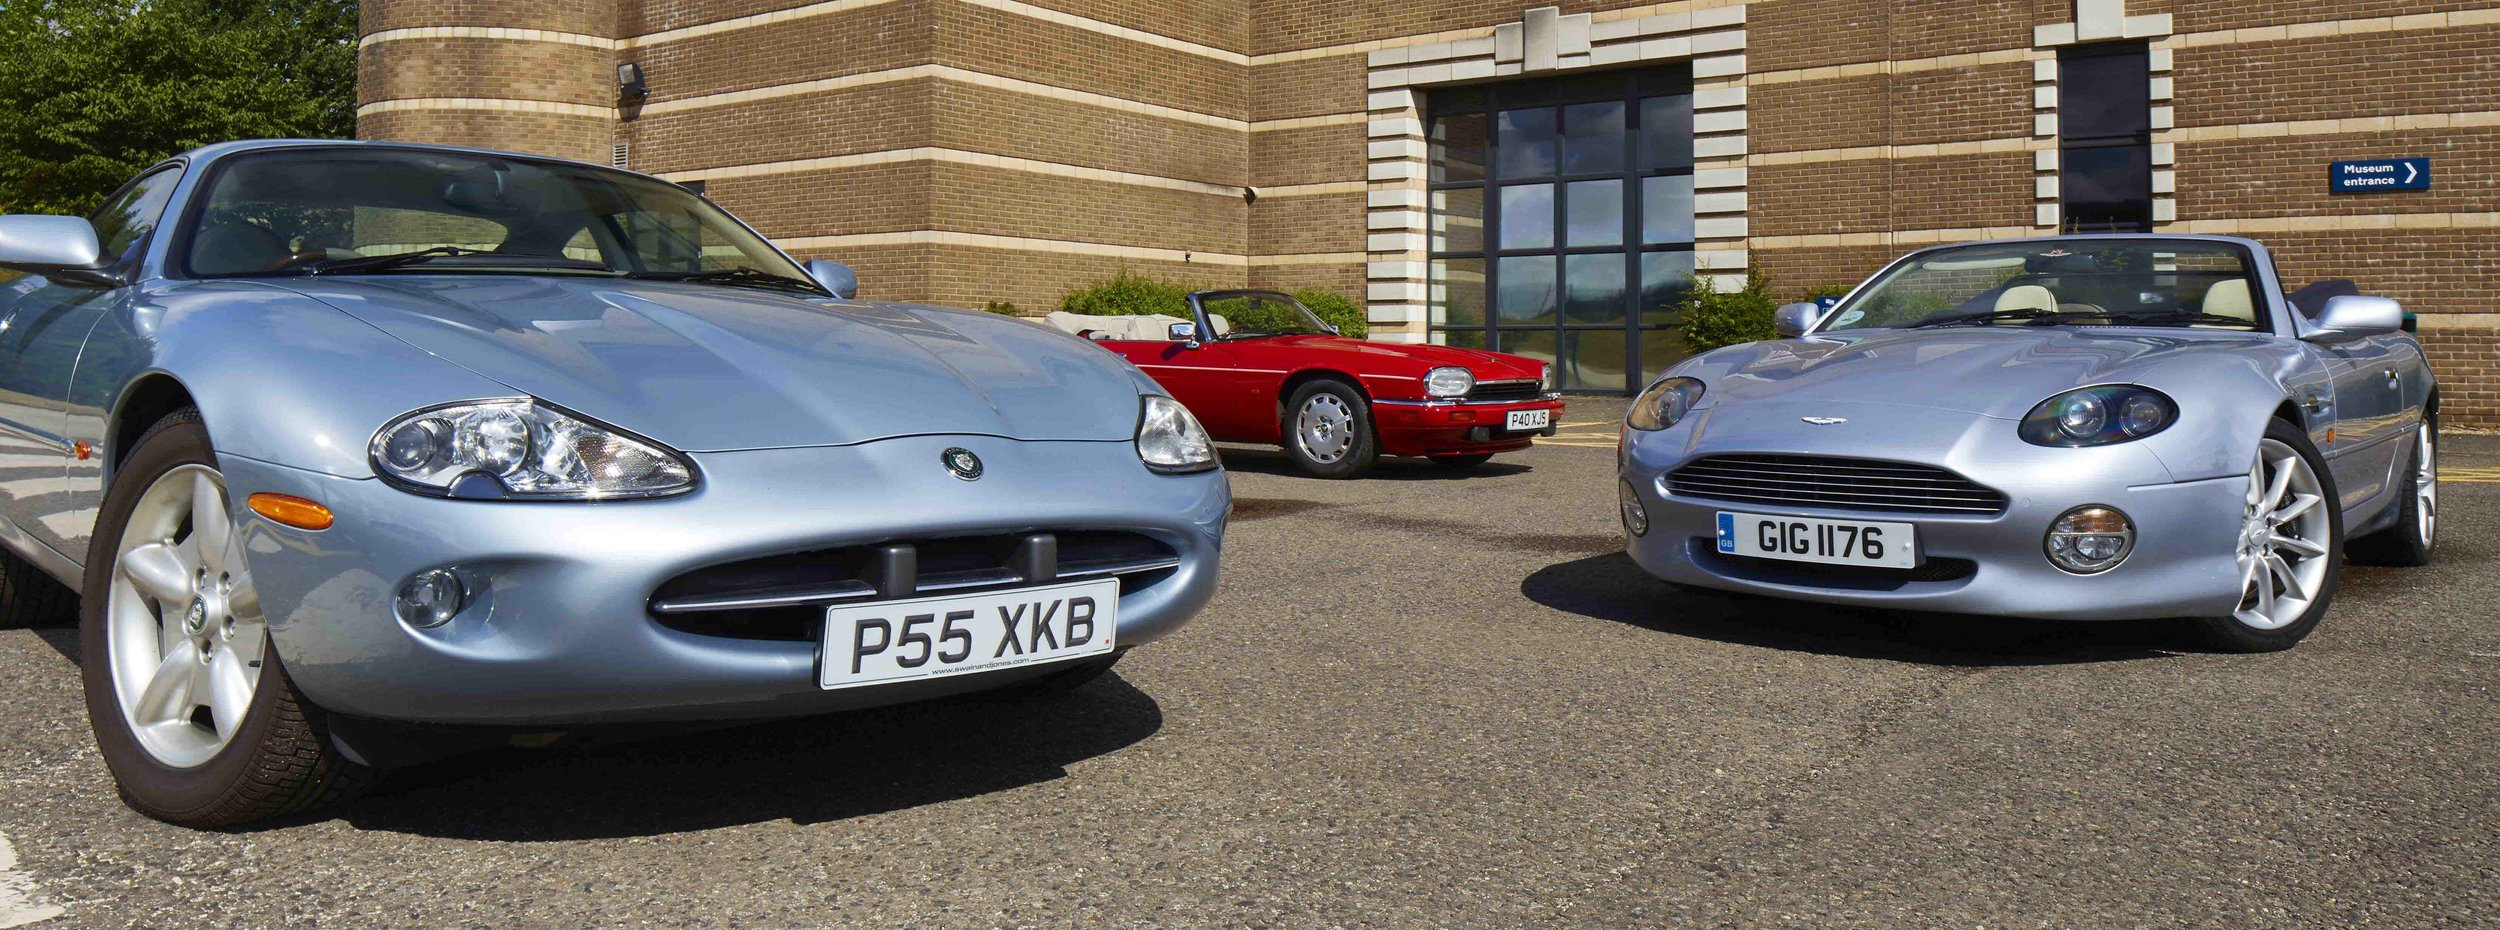 If you worked at Jaguar's Browns Lane headquarters in 1980, it would have been hard to imagine that the company's five-year old XJ-S coupe was going to live another year, never mind to 1996. Or that it would not only sire a successor, but provide the basis for a sports coupe that would save Aston Martin from oblivion. That saving came 25 years ago, the 1993 DB7 becoming the most successful Aston yet when it was replaced in 2004. Like the Aston, the 1996 Jaguar XK8 was heavily reliant on the XJ-S as a hardware source, if with extensive modifications, a new 4.0 litre V8 and a decidedly more modern look in which ghosts of the E-Type were easily seen. The father of these two, then, was the XJ-S… which you can read all about in the new issue of Practical Classics….